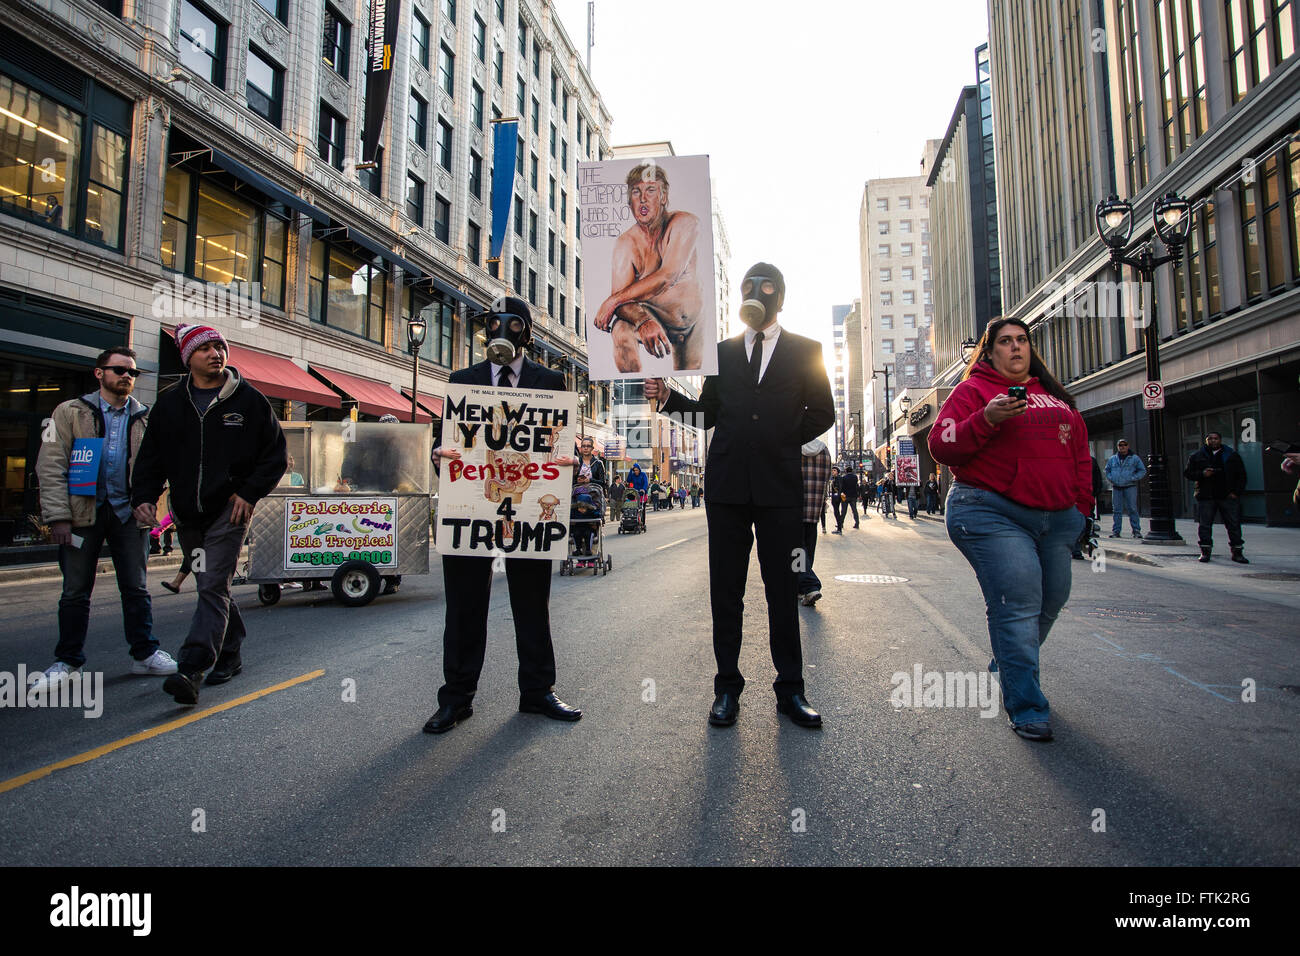 Milwaukee, WI. March 29th, 2016. Two men stand with signs saying 'Men with Yuge Penises 4 Trump'. These - Stock Image